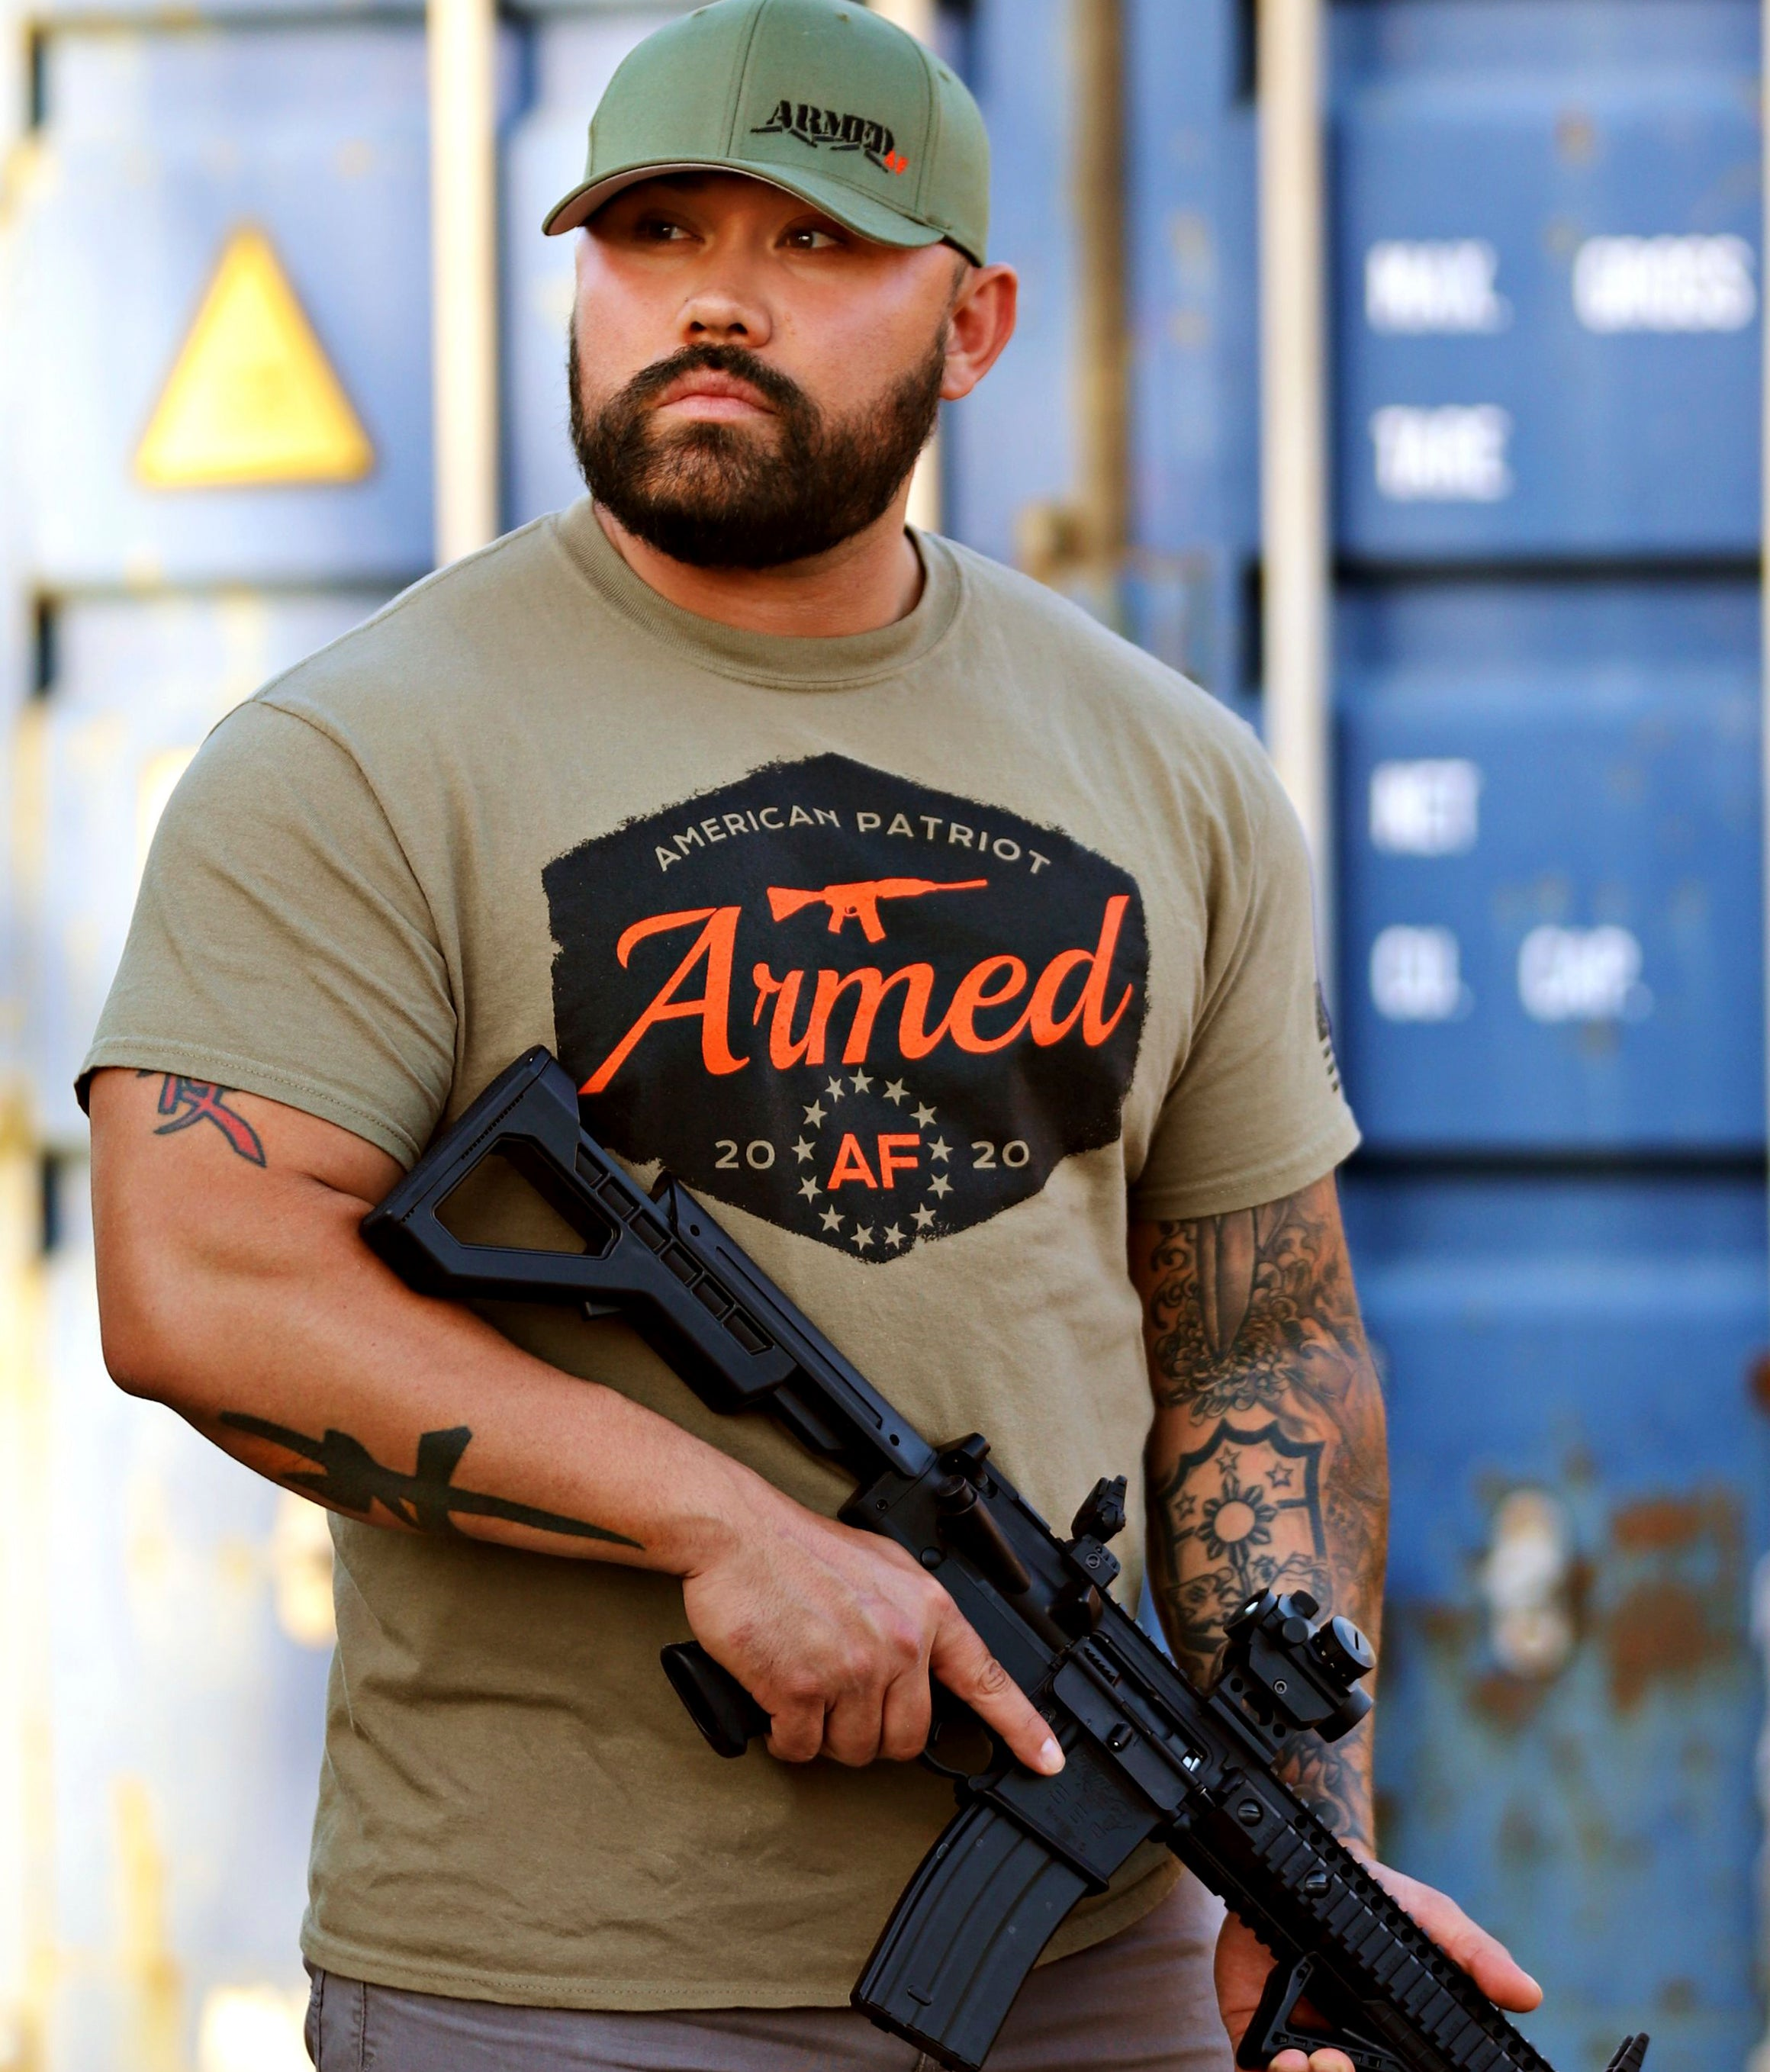 Armed AF logo shirt on model with ar15